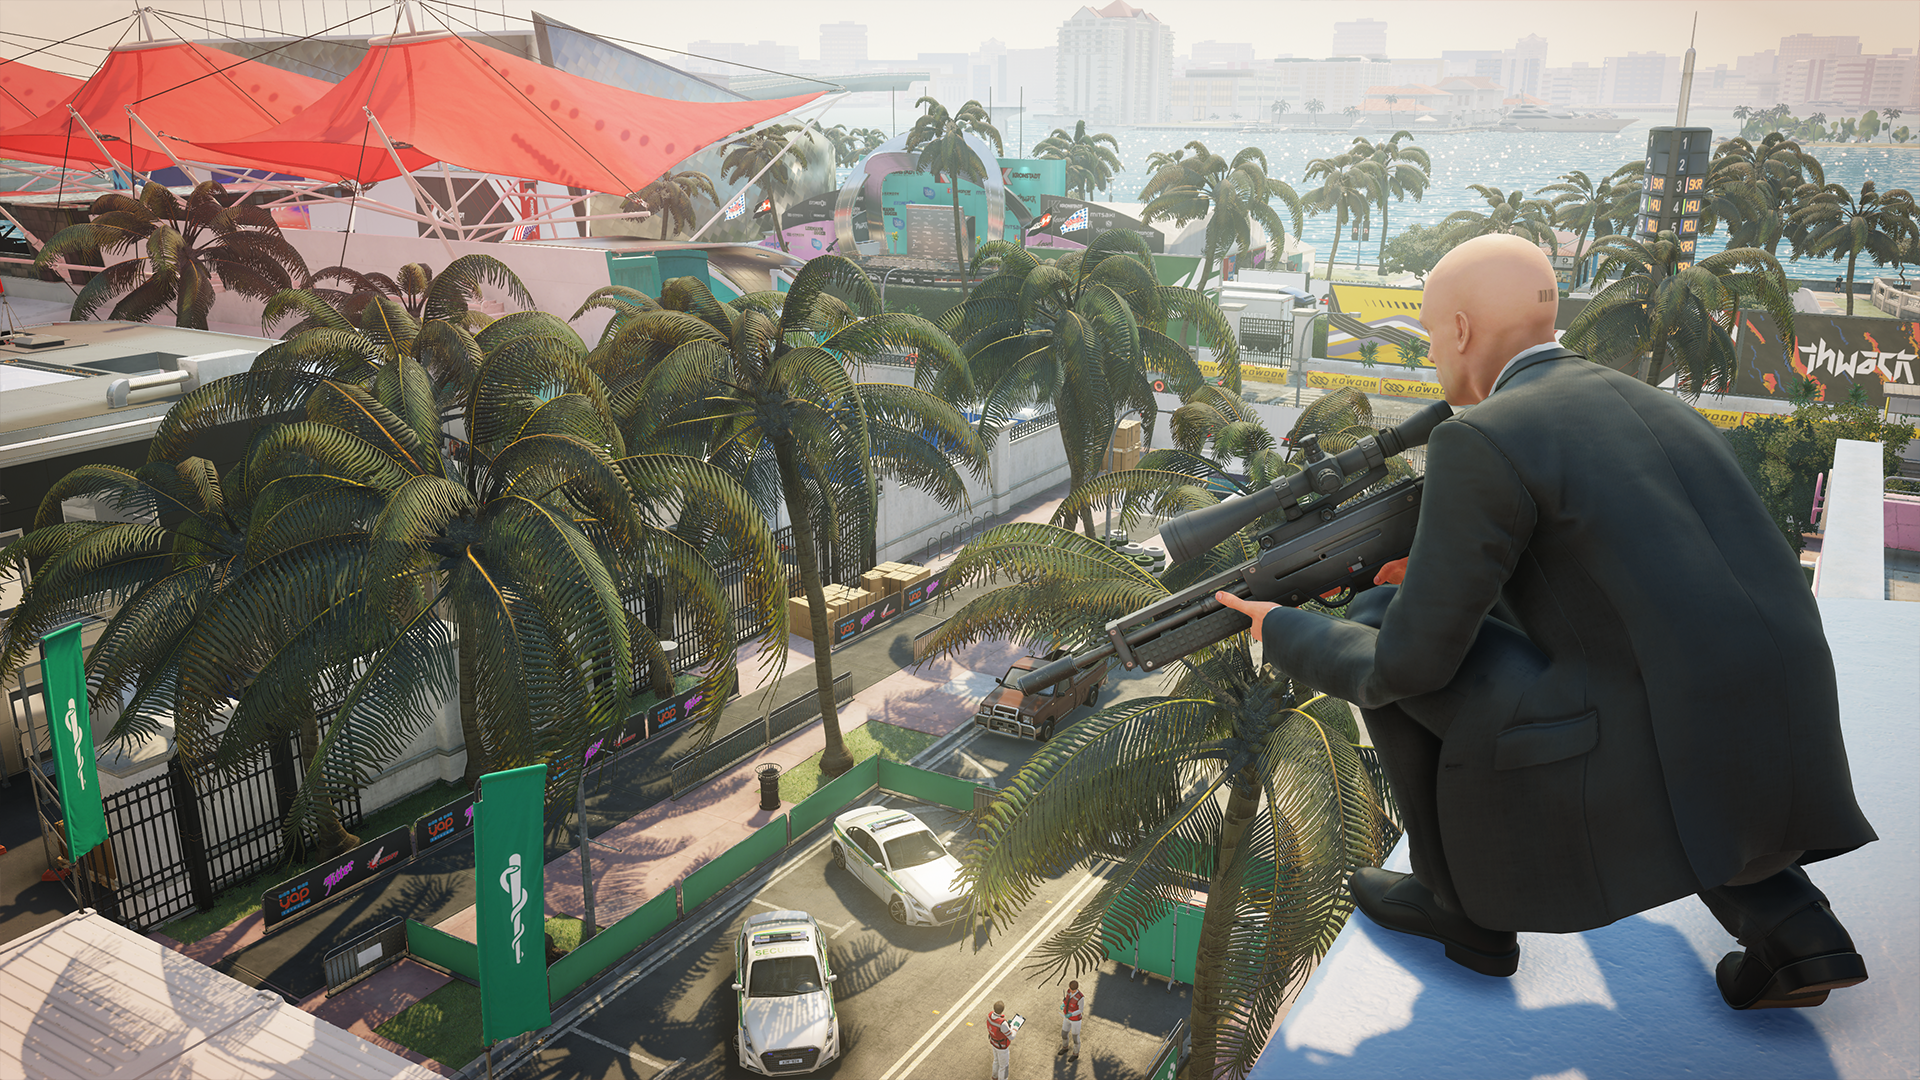 Image from Hitman 2